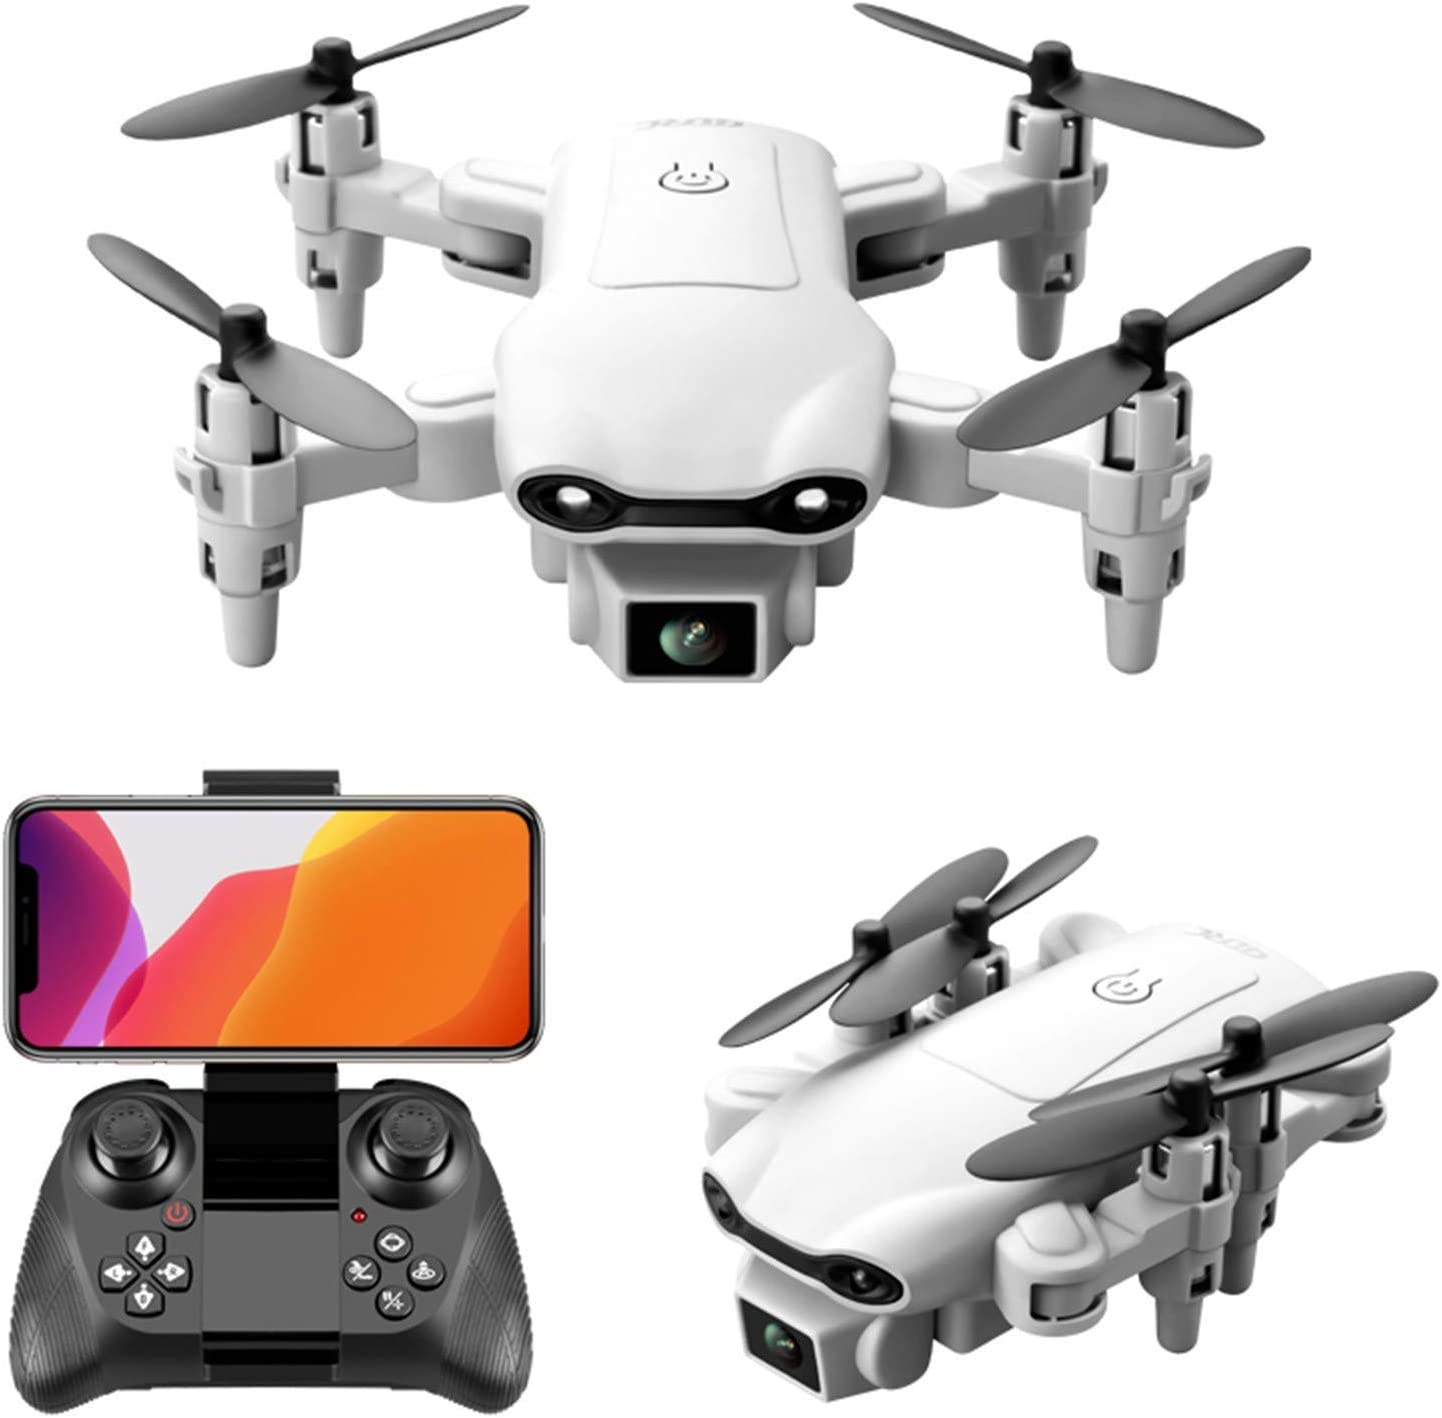 WiFi FPV Drone with VR Glasses Mini Drones with 4K Dual Camera Foldable Drone RC Quadcopter one Key to Return Home, Flight Path Gesture Photo,3Battery